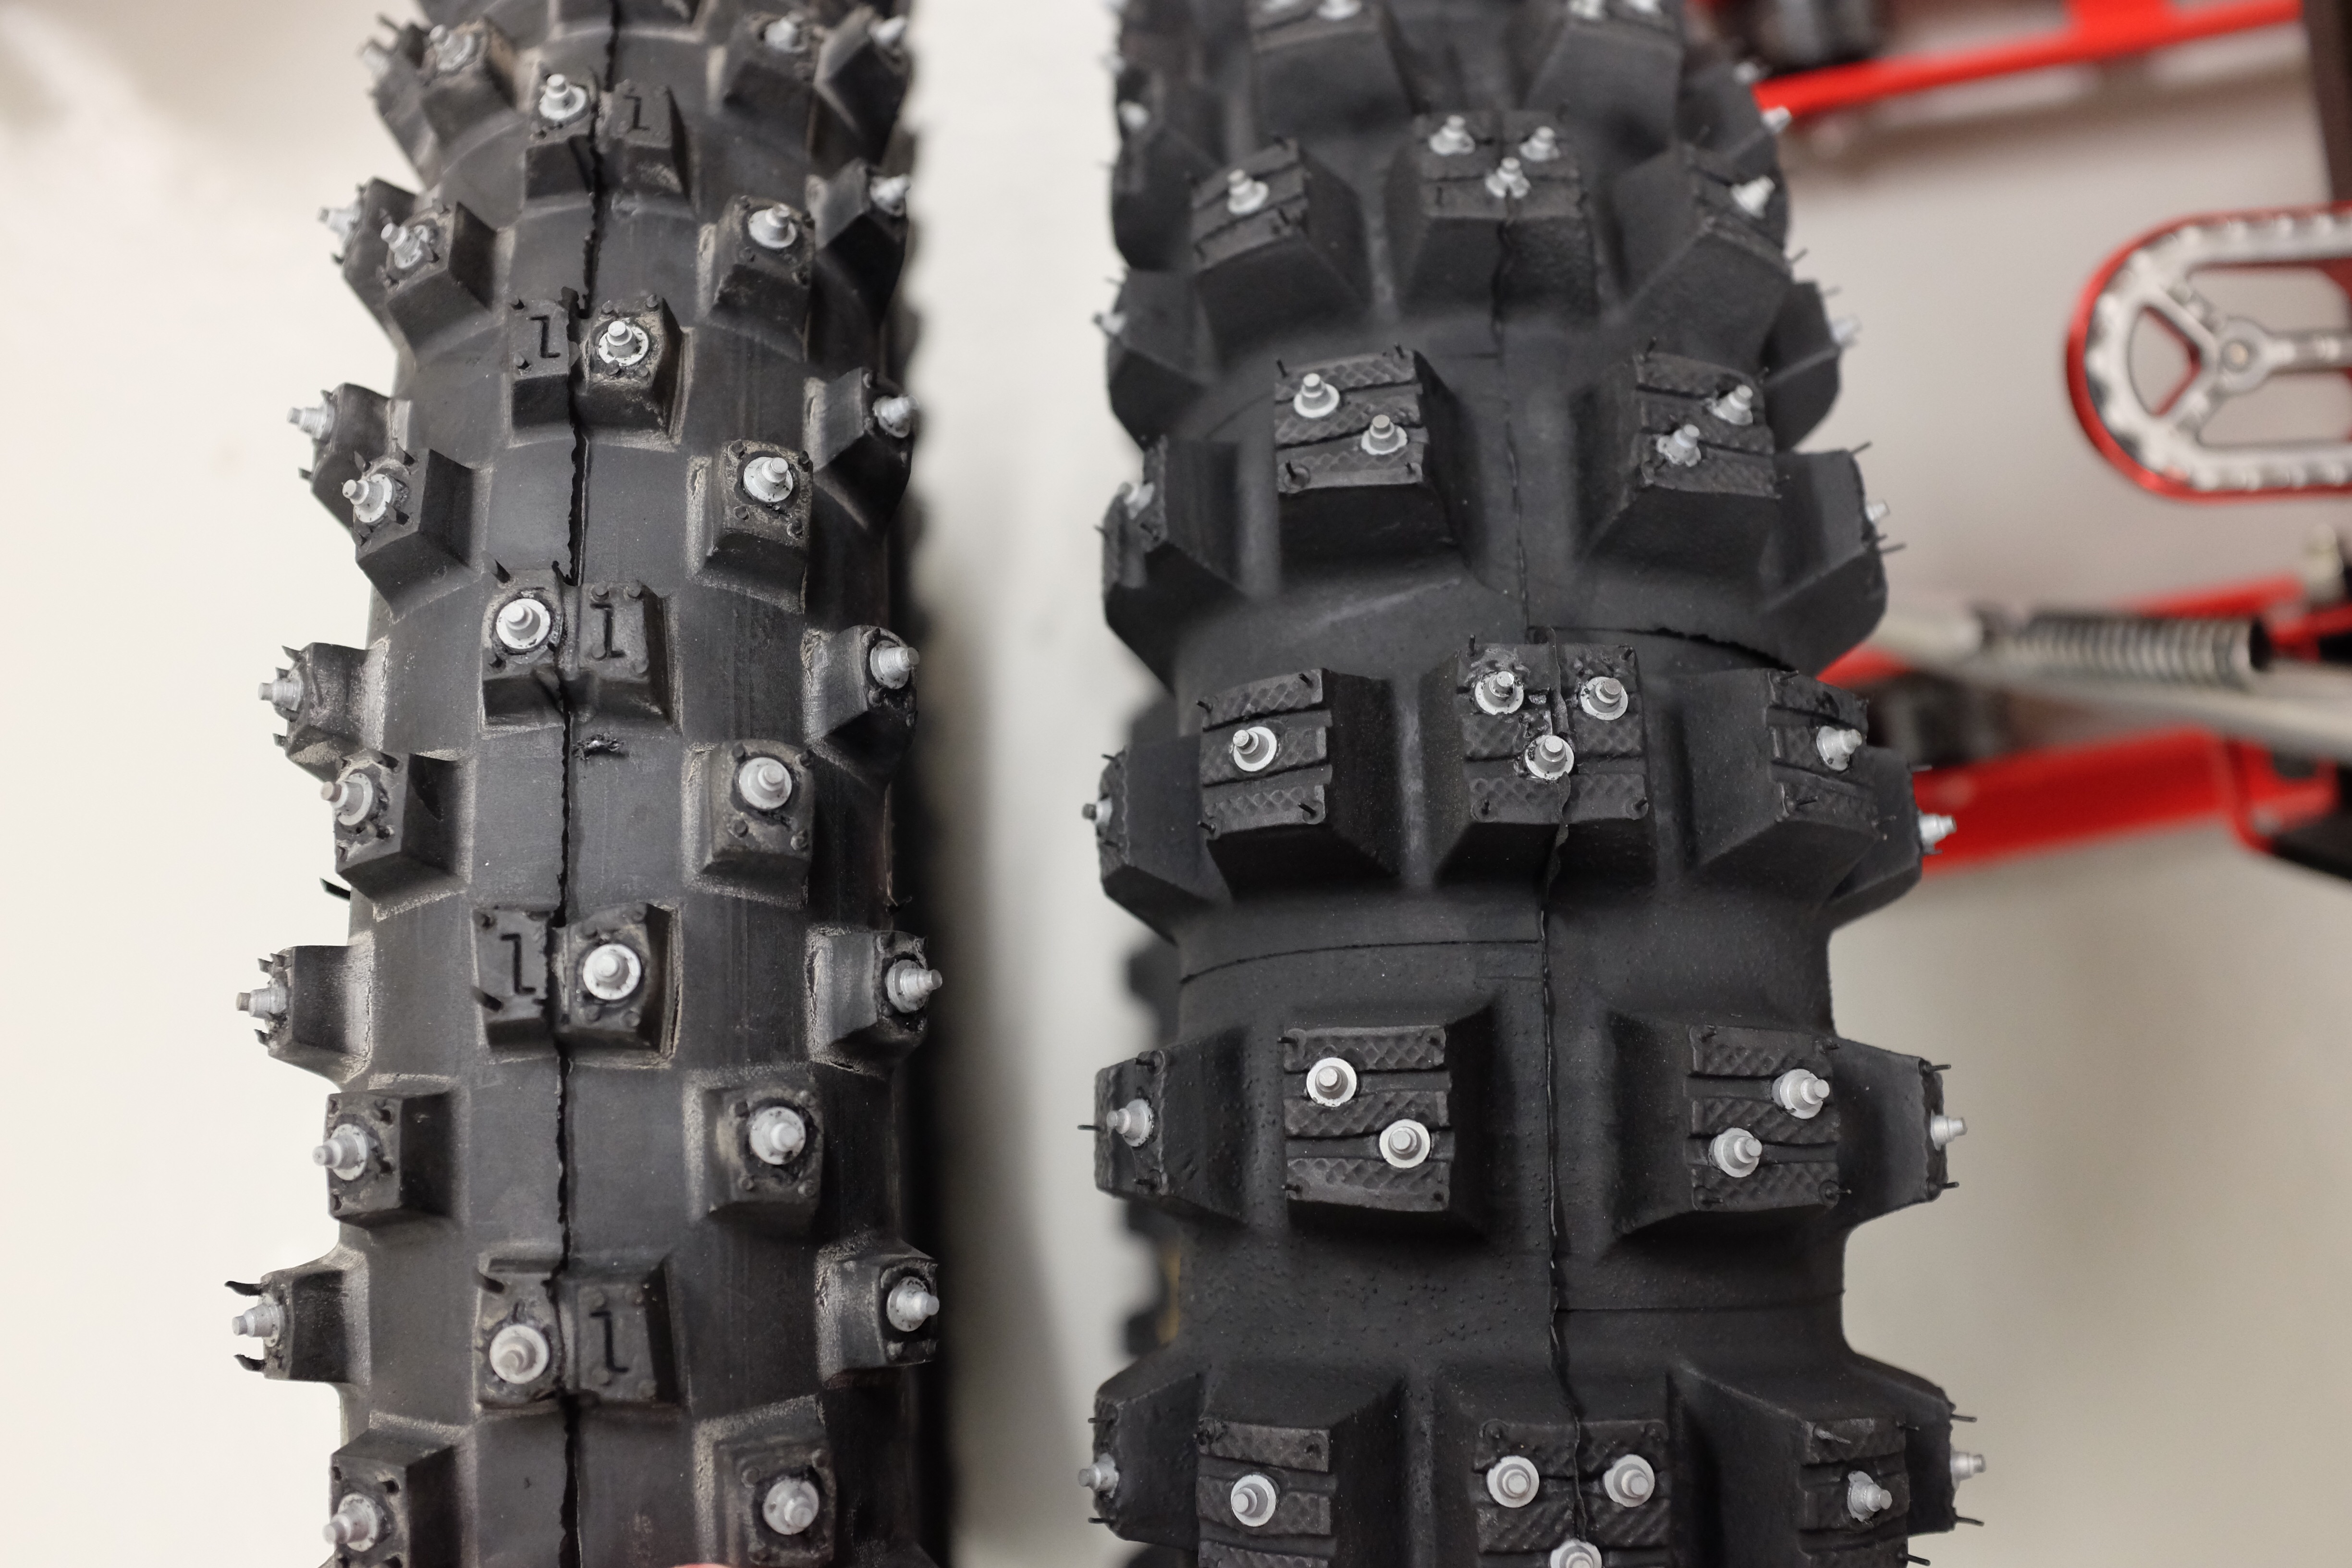 Studded winter tires for Honda CRF 250 Rally. The rear doesn't fit though. Mitas CO2 120/90 -18 rear with studs is too tall to clear the rear swing.